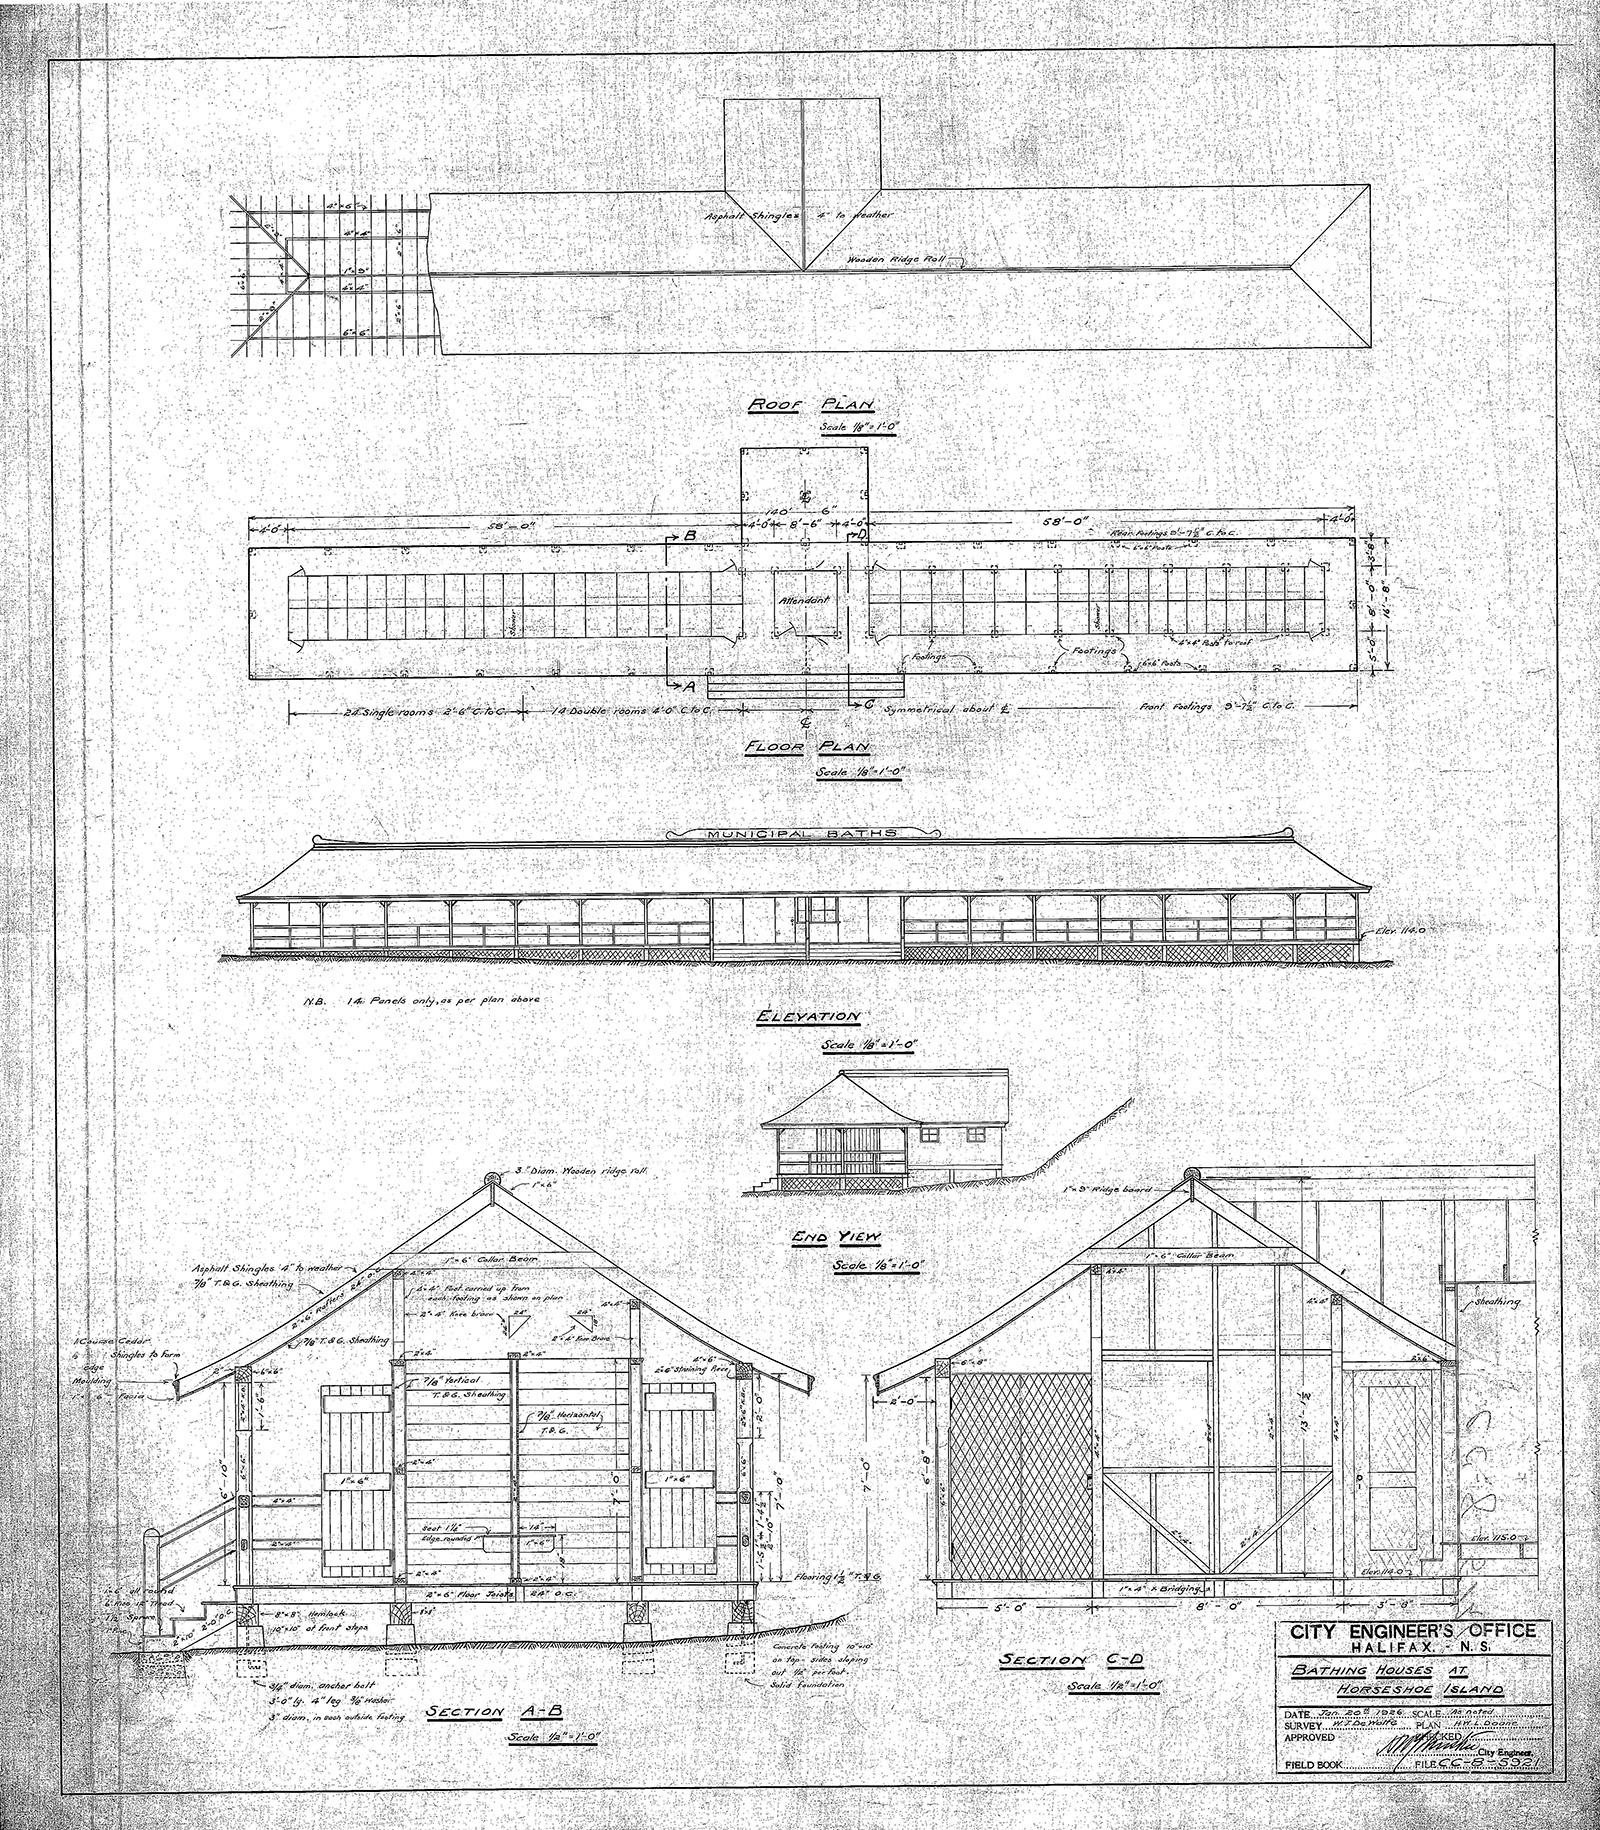 Black and white architectural plans for bathing house at Horseshoe Island, 1926.